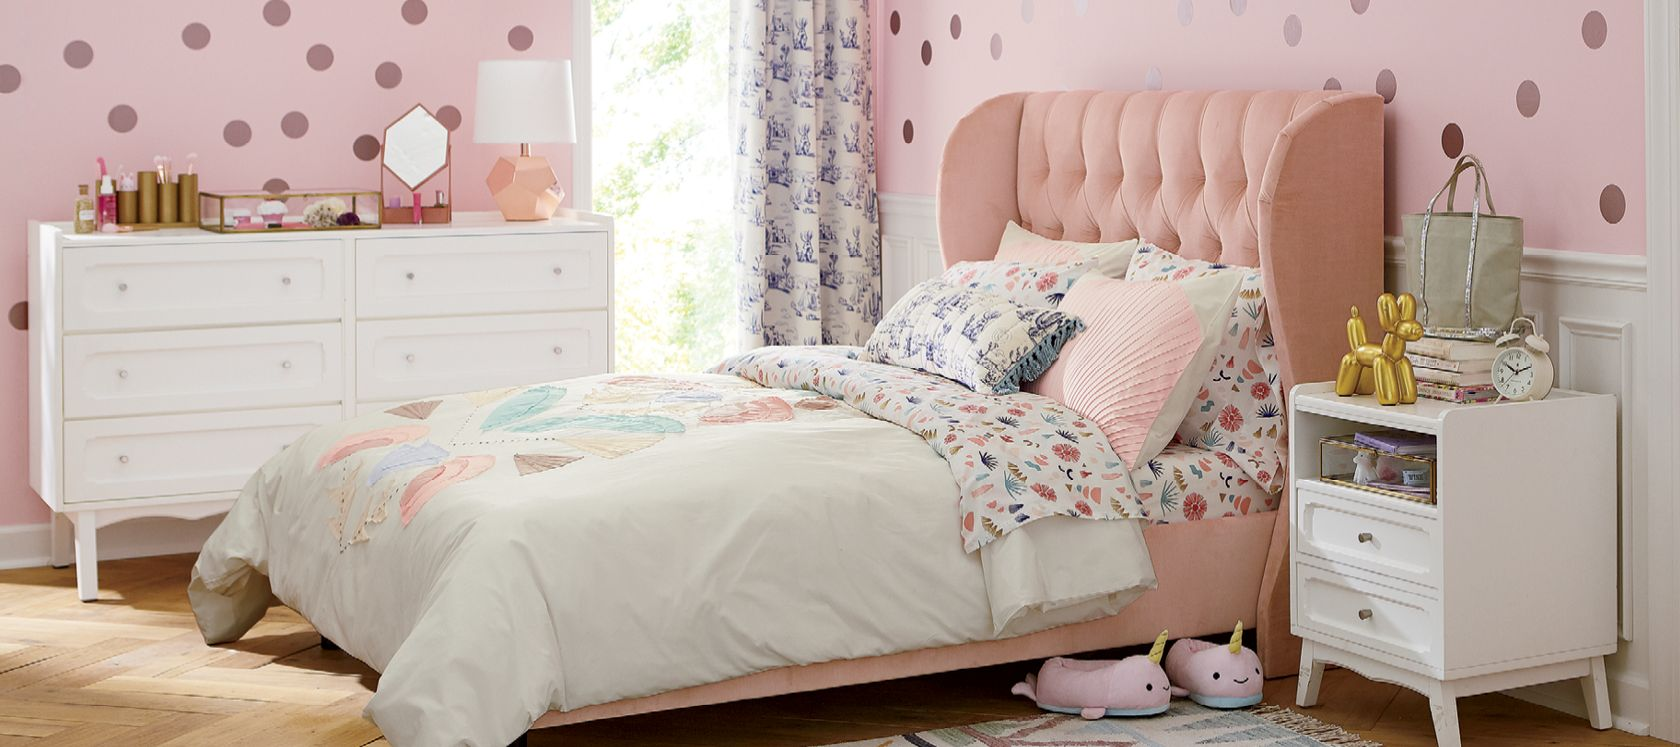 Girls Bedroom Inspiration | Crate and Barrel